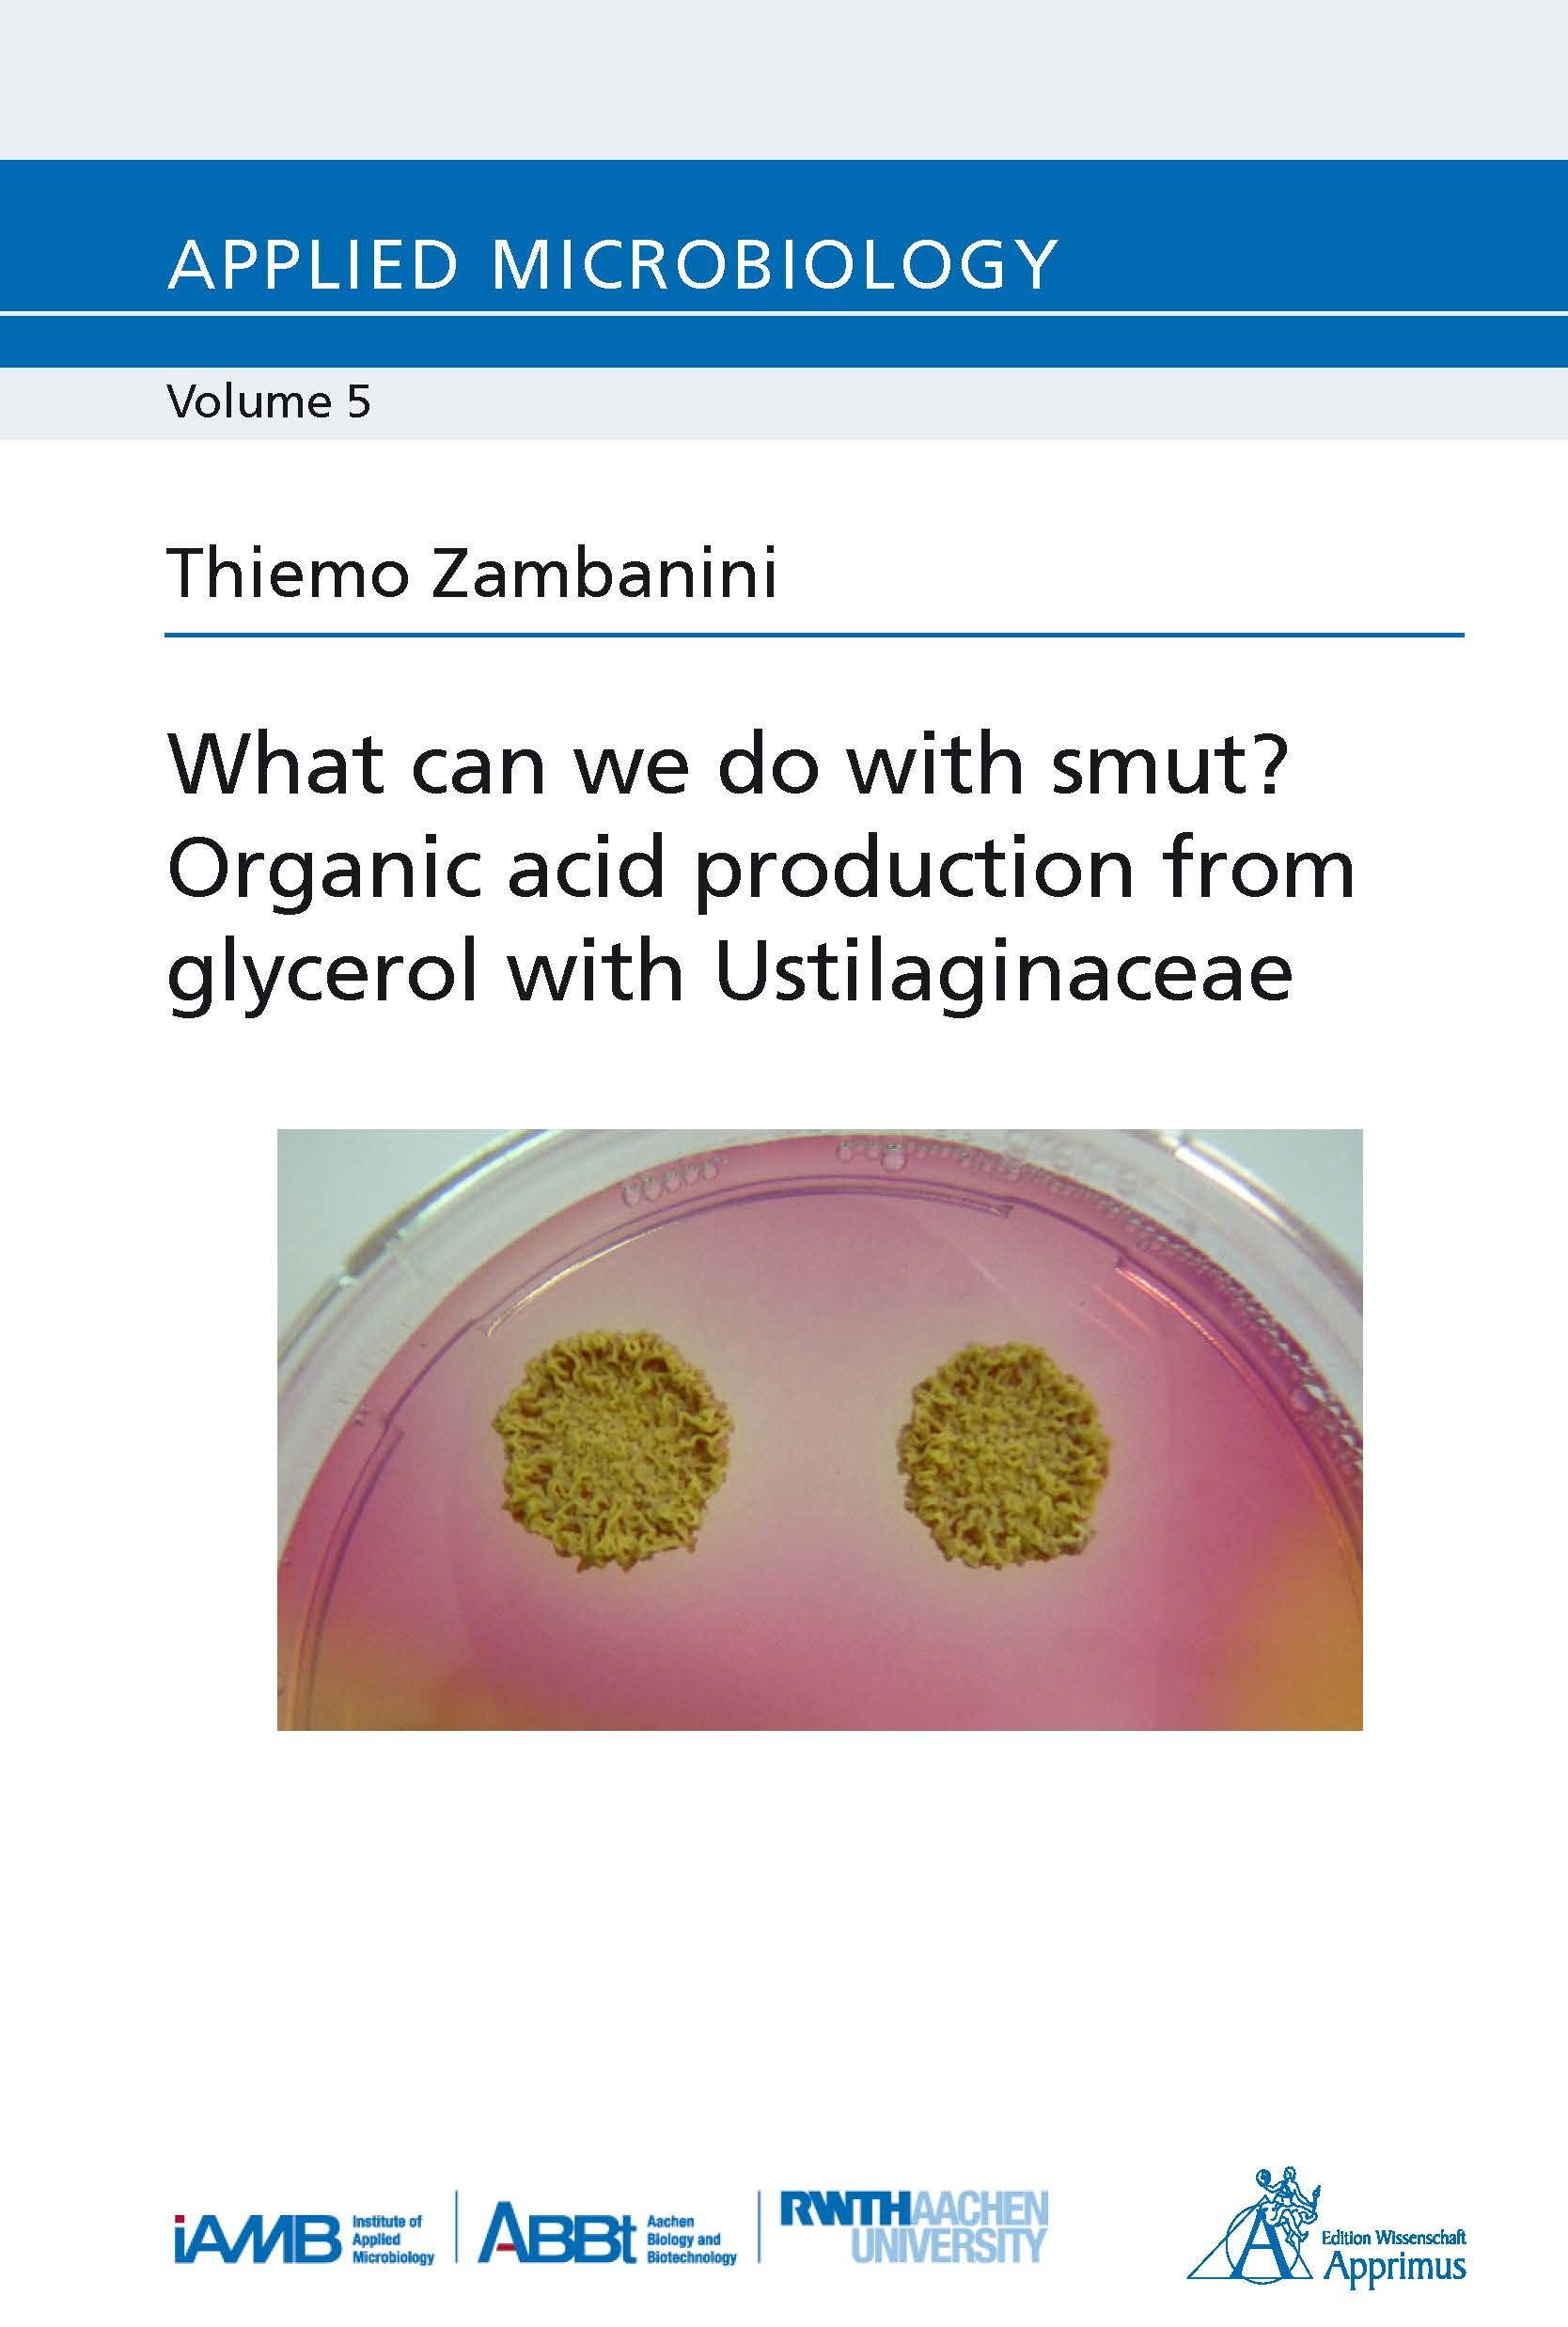 What can we do with smut? Organic acid production from glycerol with Ustilaginaceae